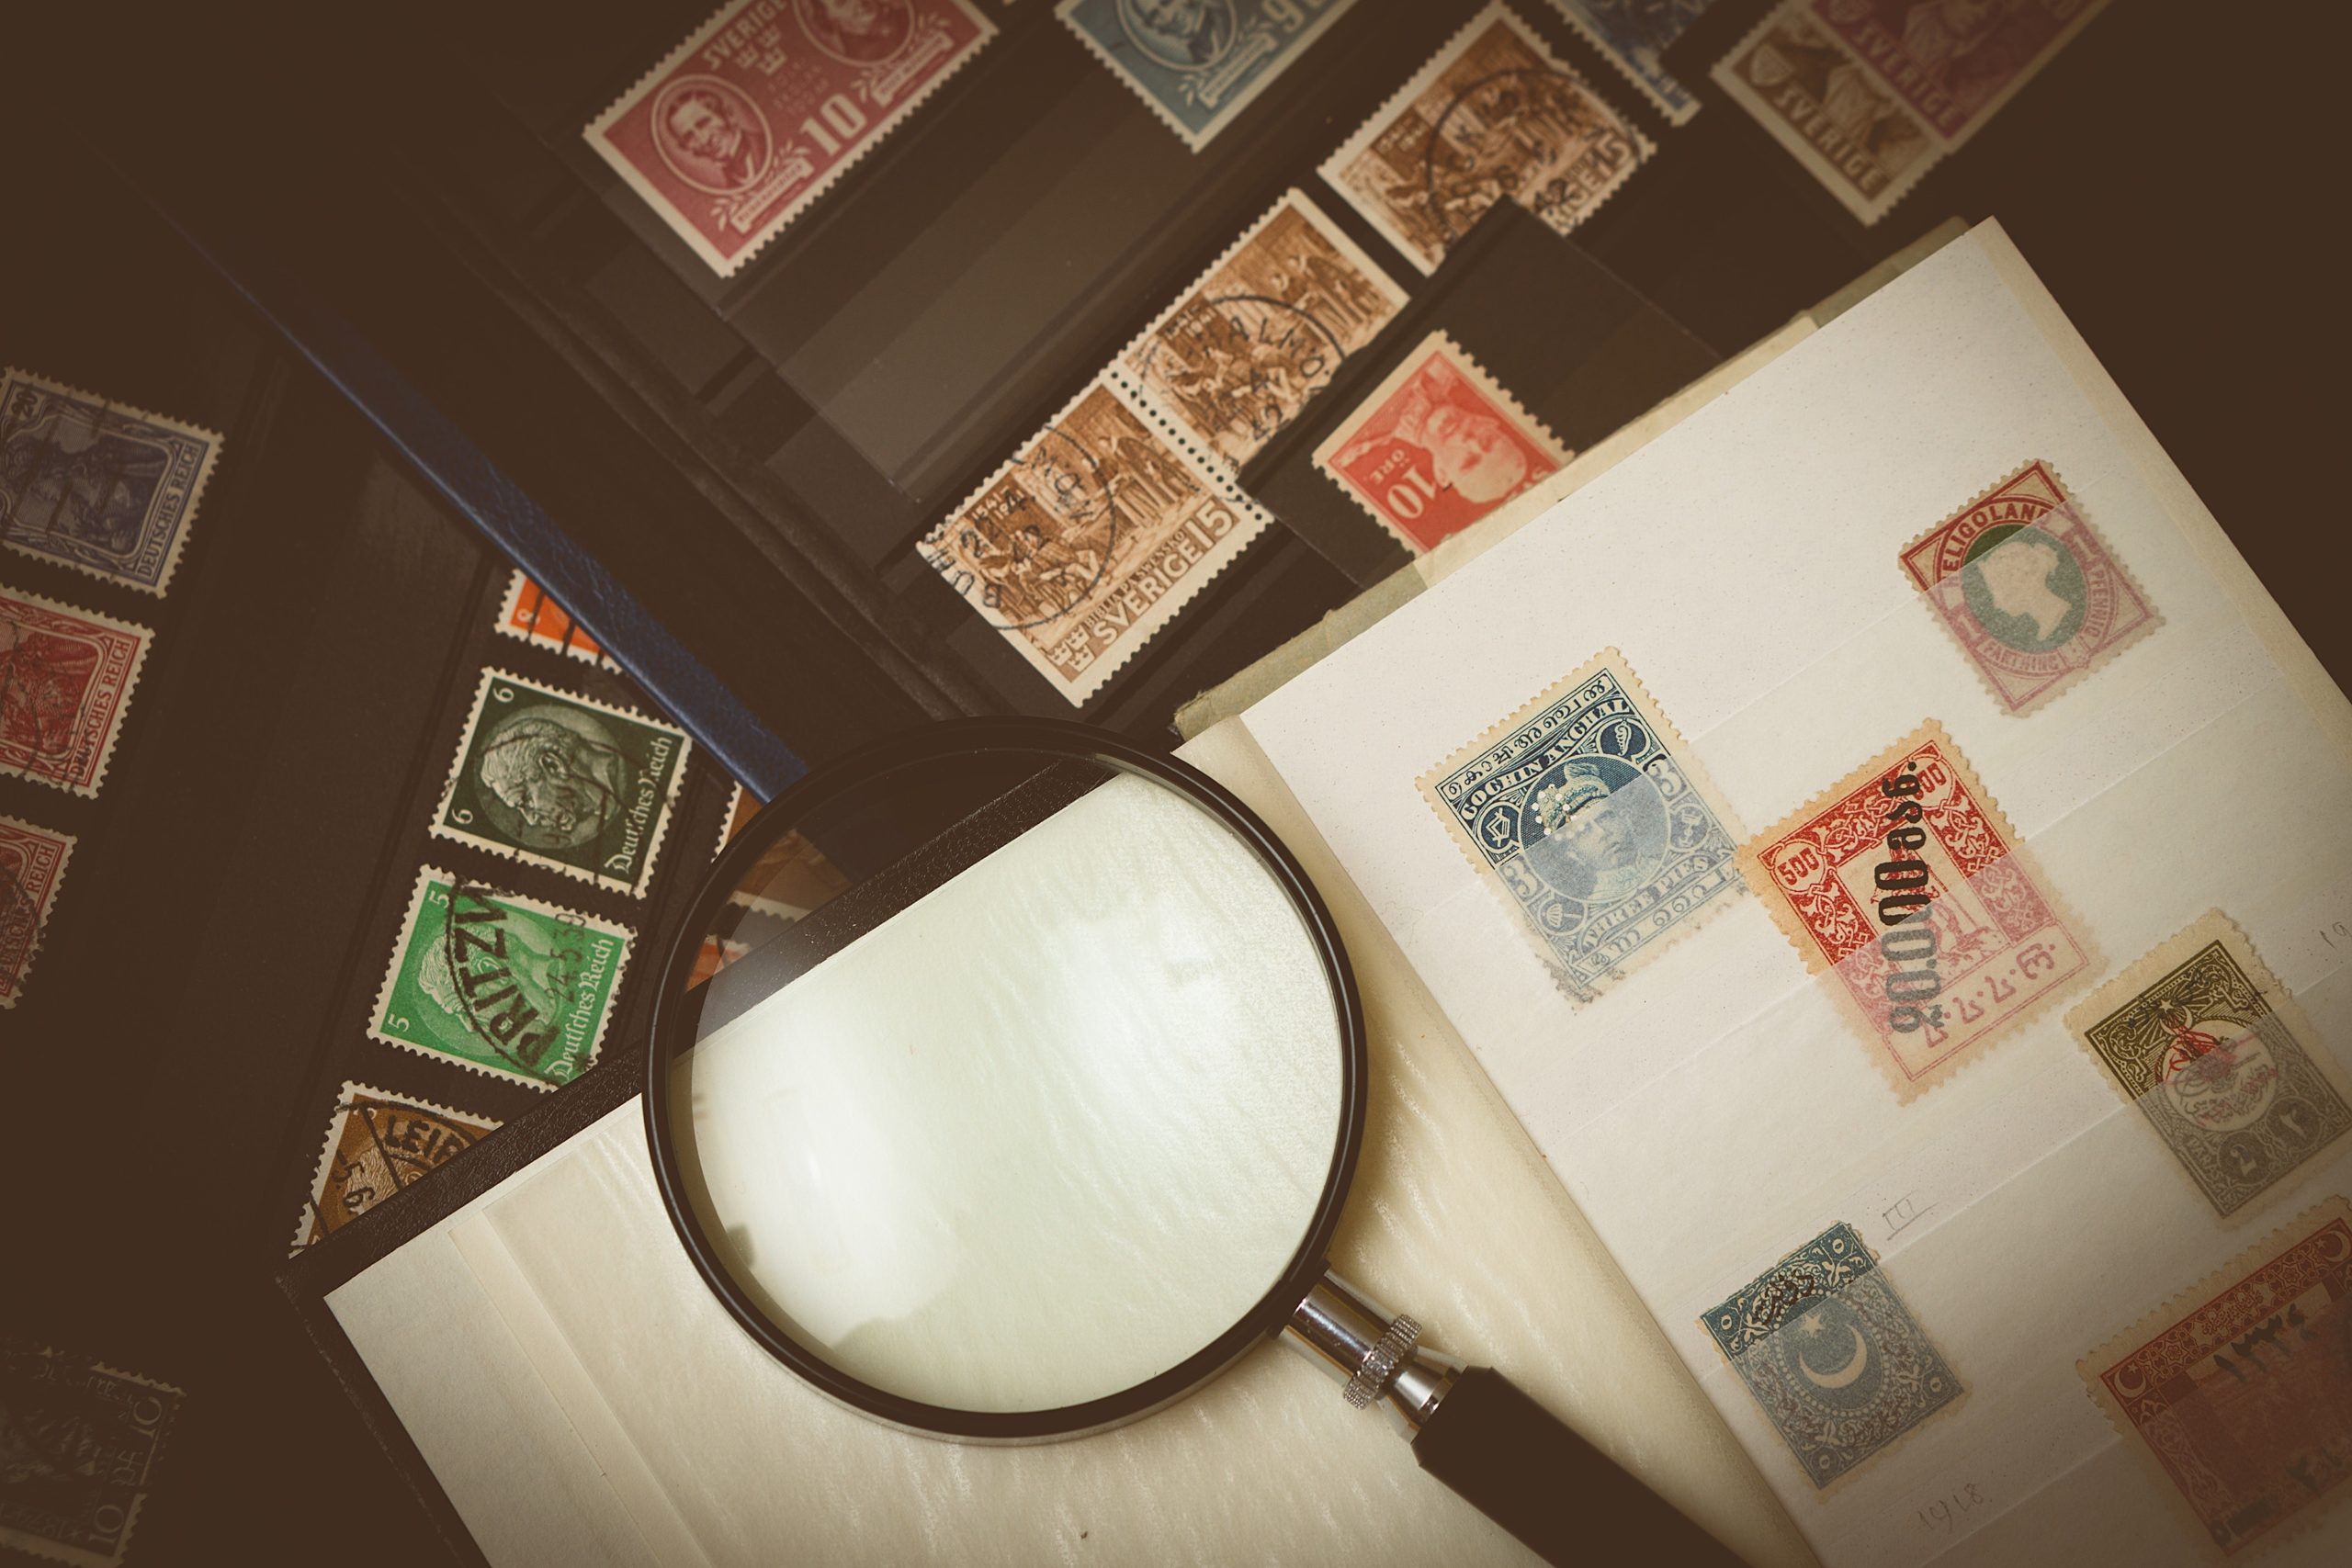 How To Recycle Stamps